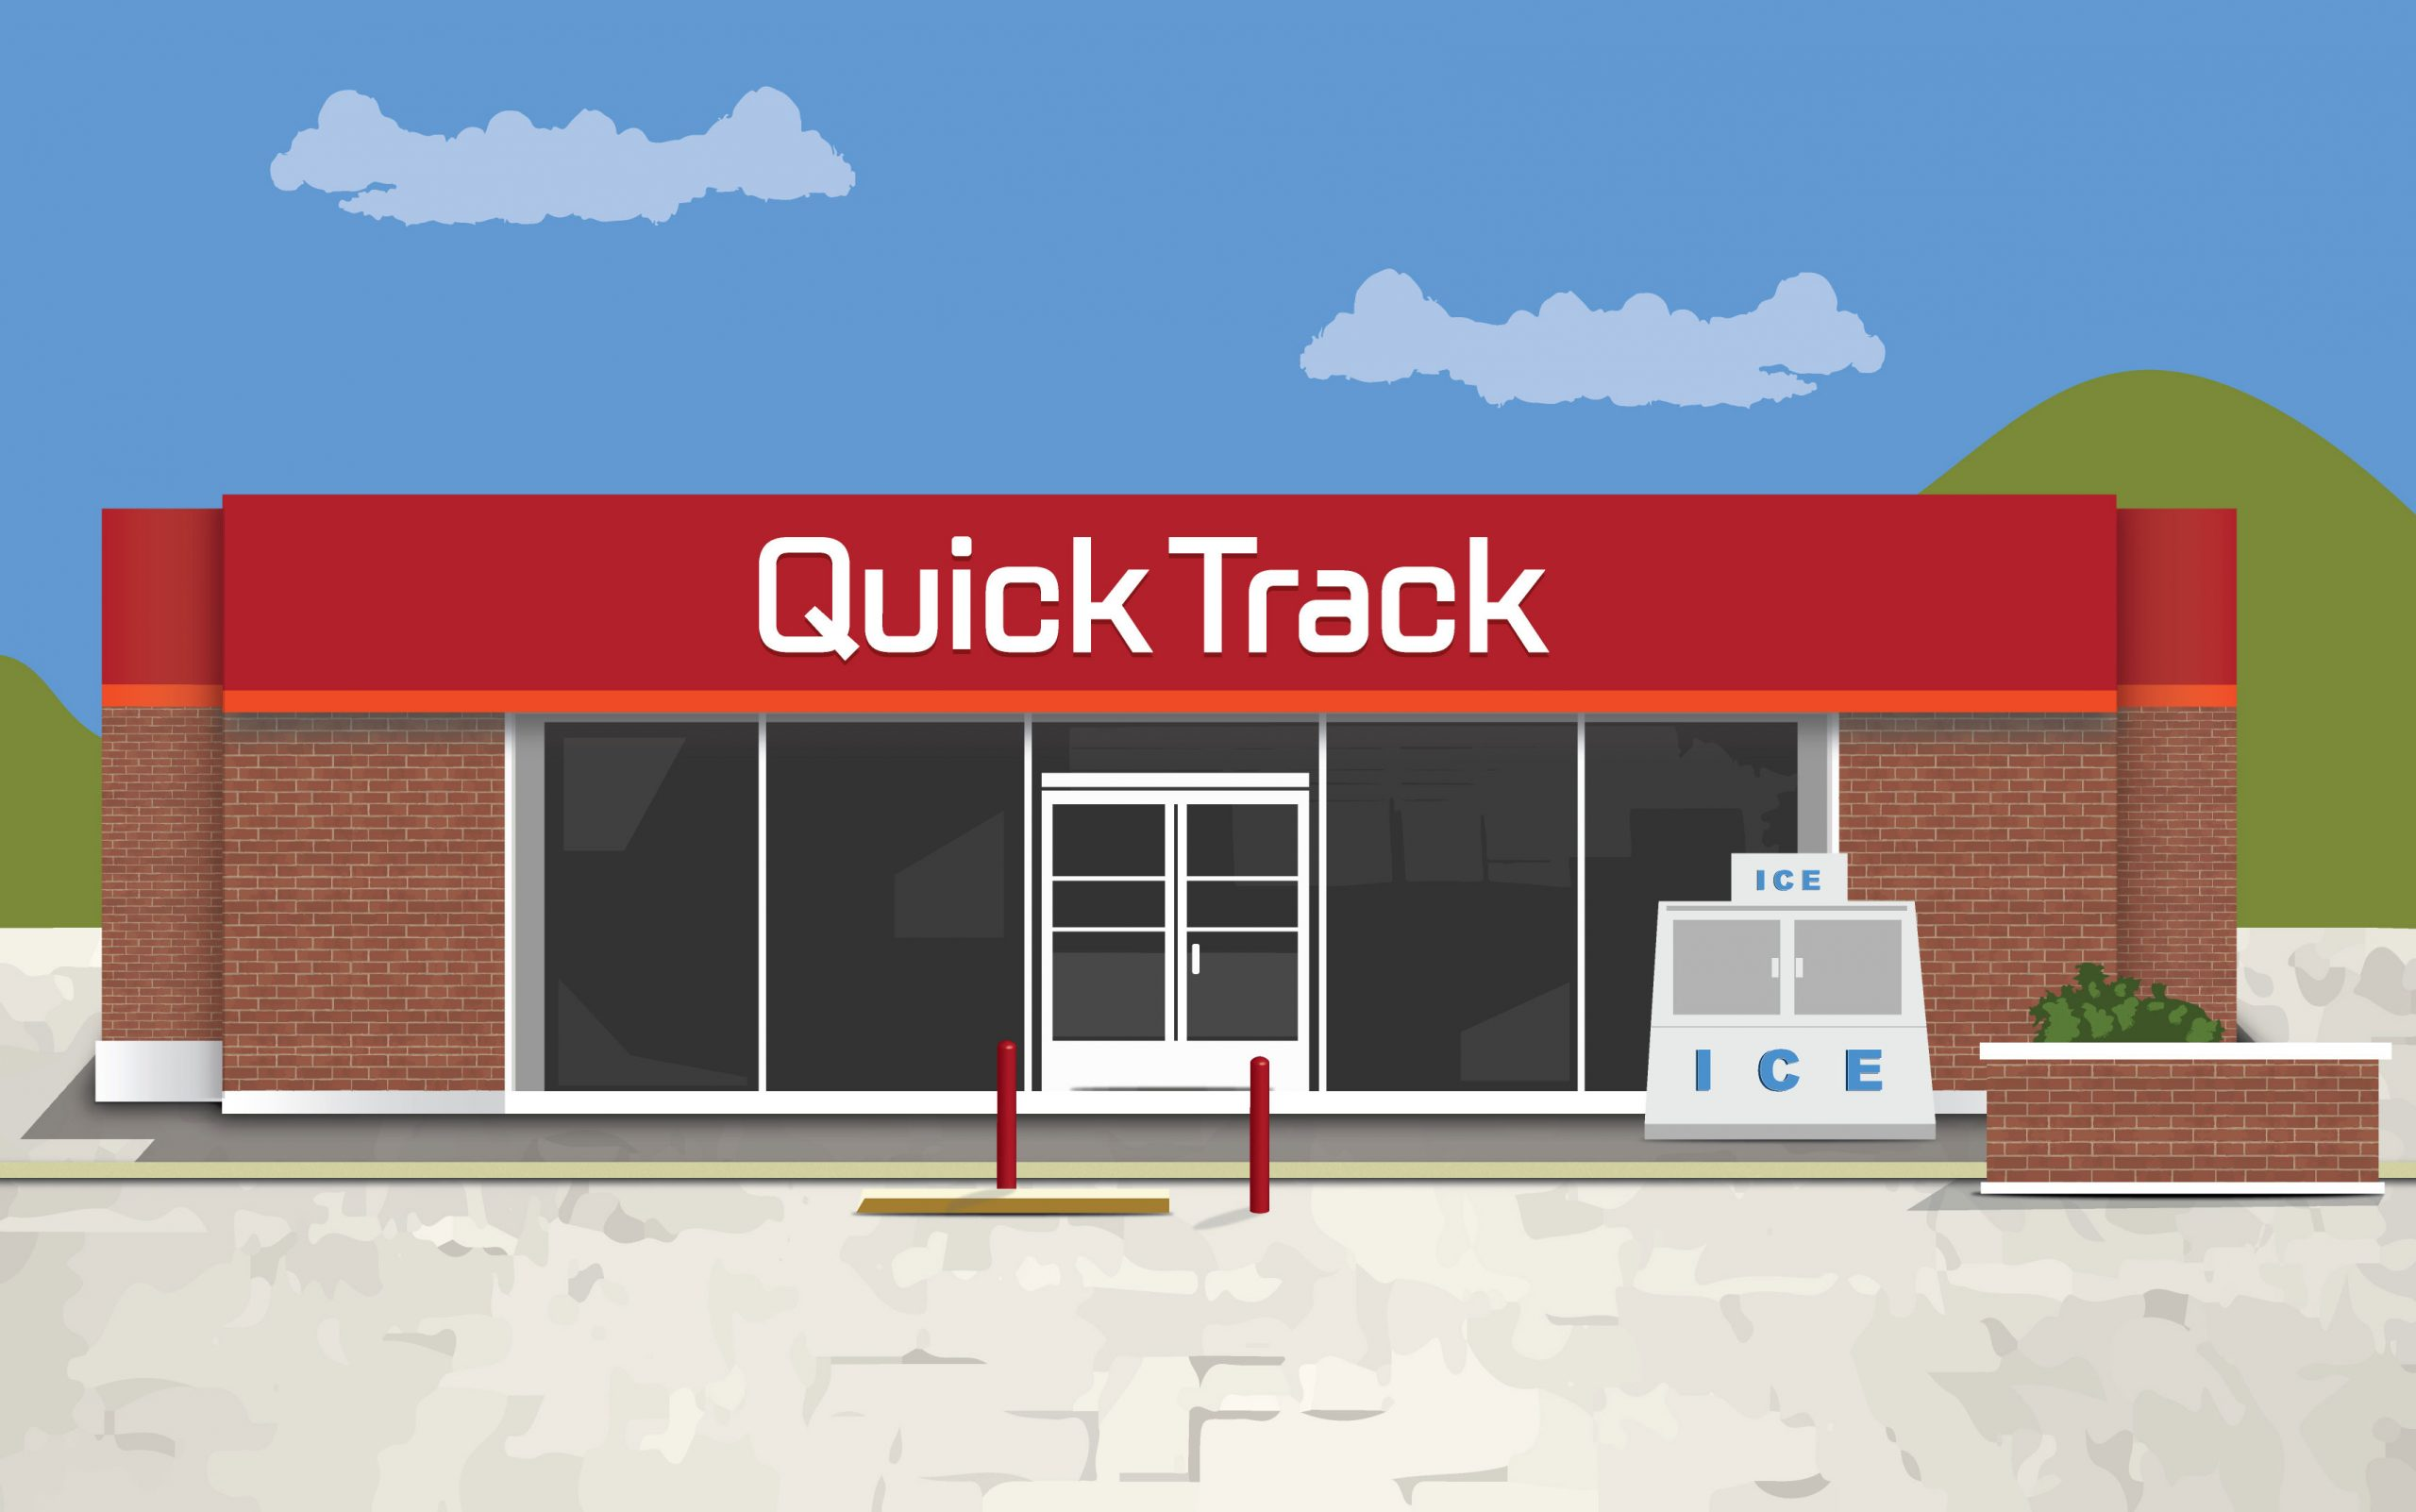 About Quick Track